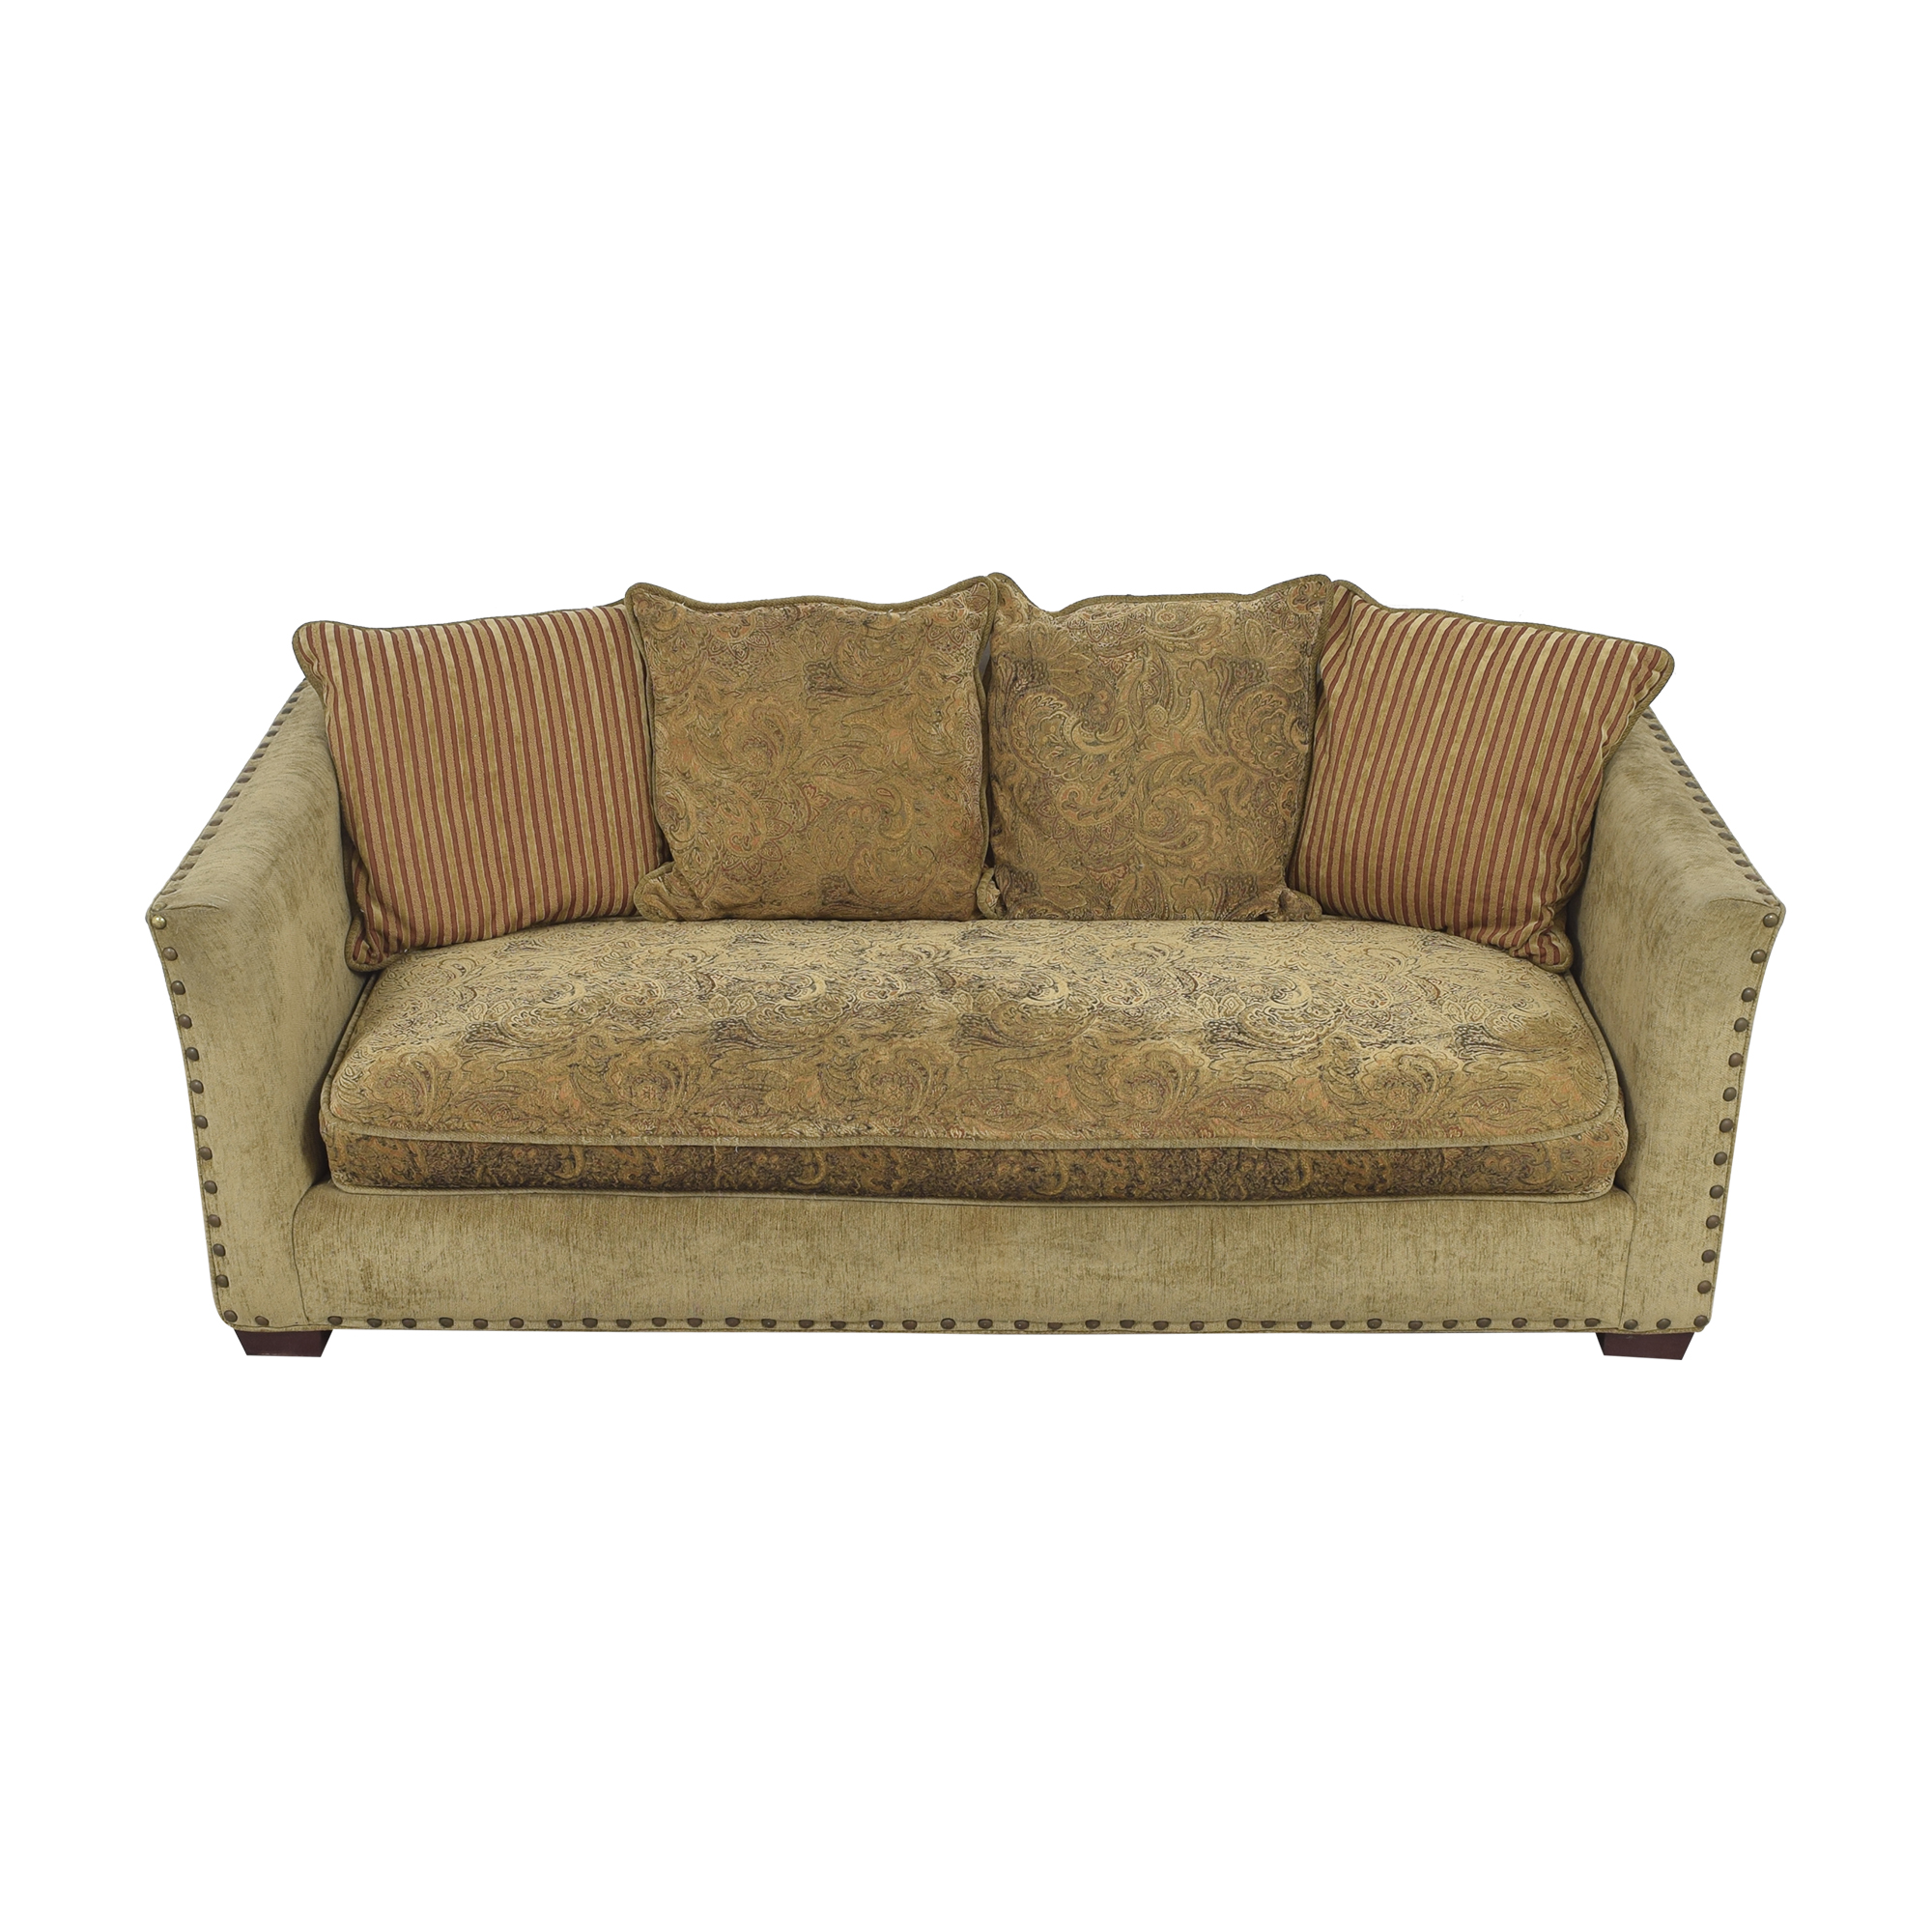 buy Robin Bruce Bench Cushion Sofa Robin Bruce